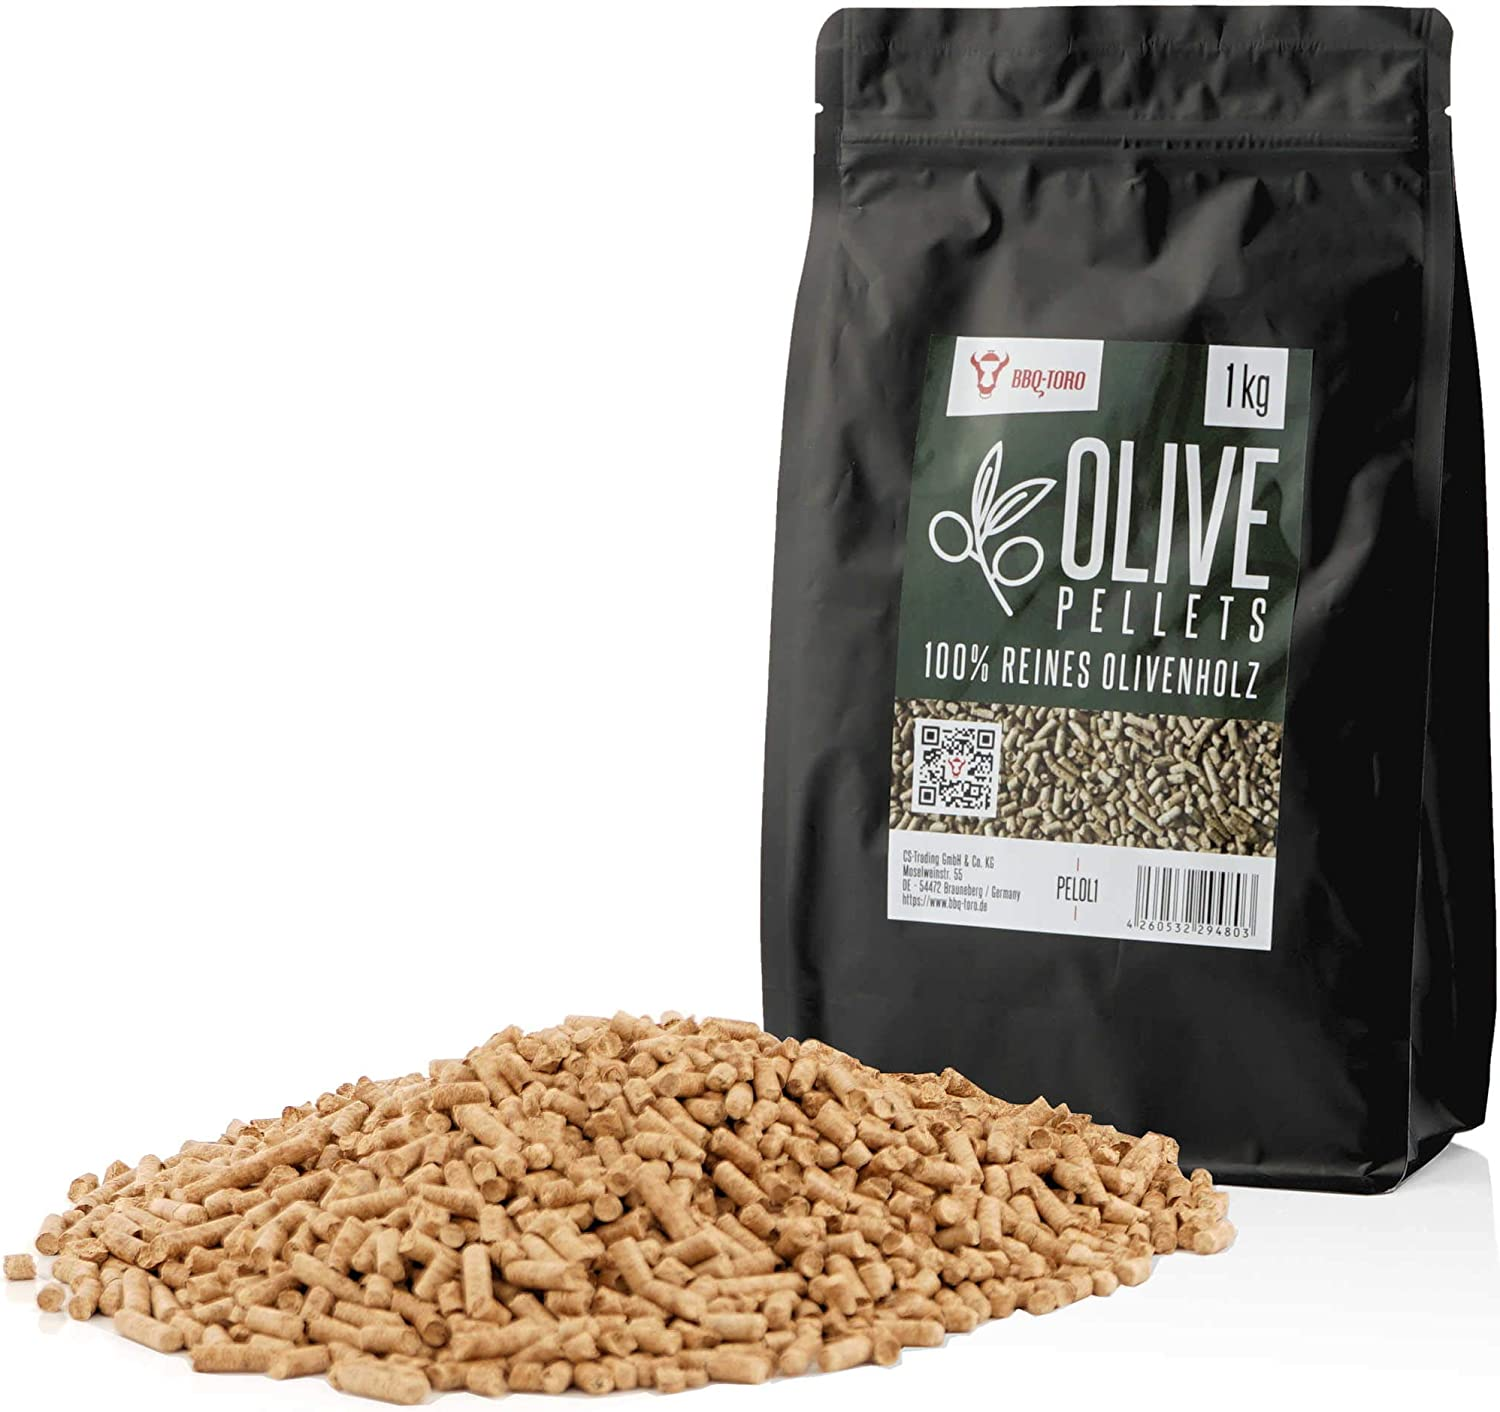 smoker 1 kg 1.0 Grill Pellets Olive pellets for grill pellet pizza oven and heating systems BBQ-Toro Olive Pellets made of 100/% olive wood